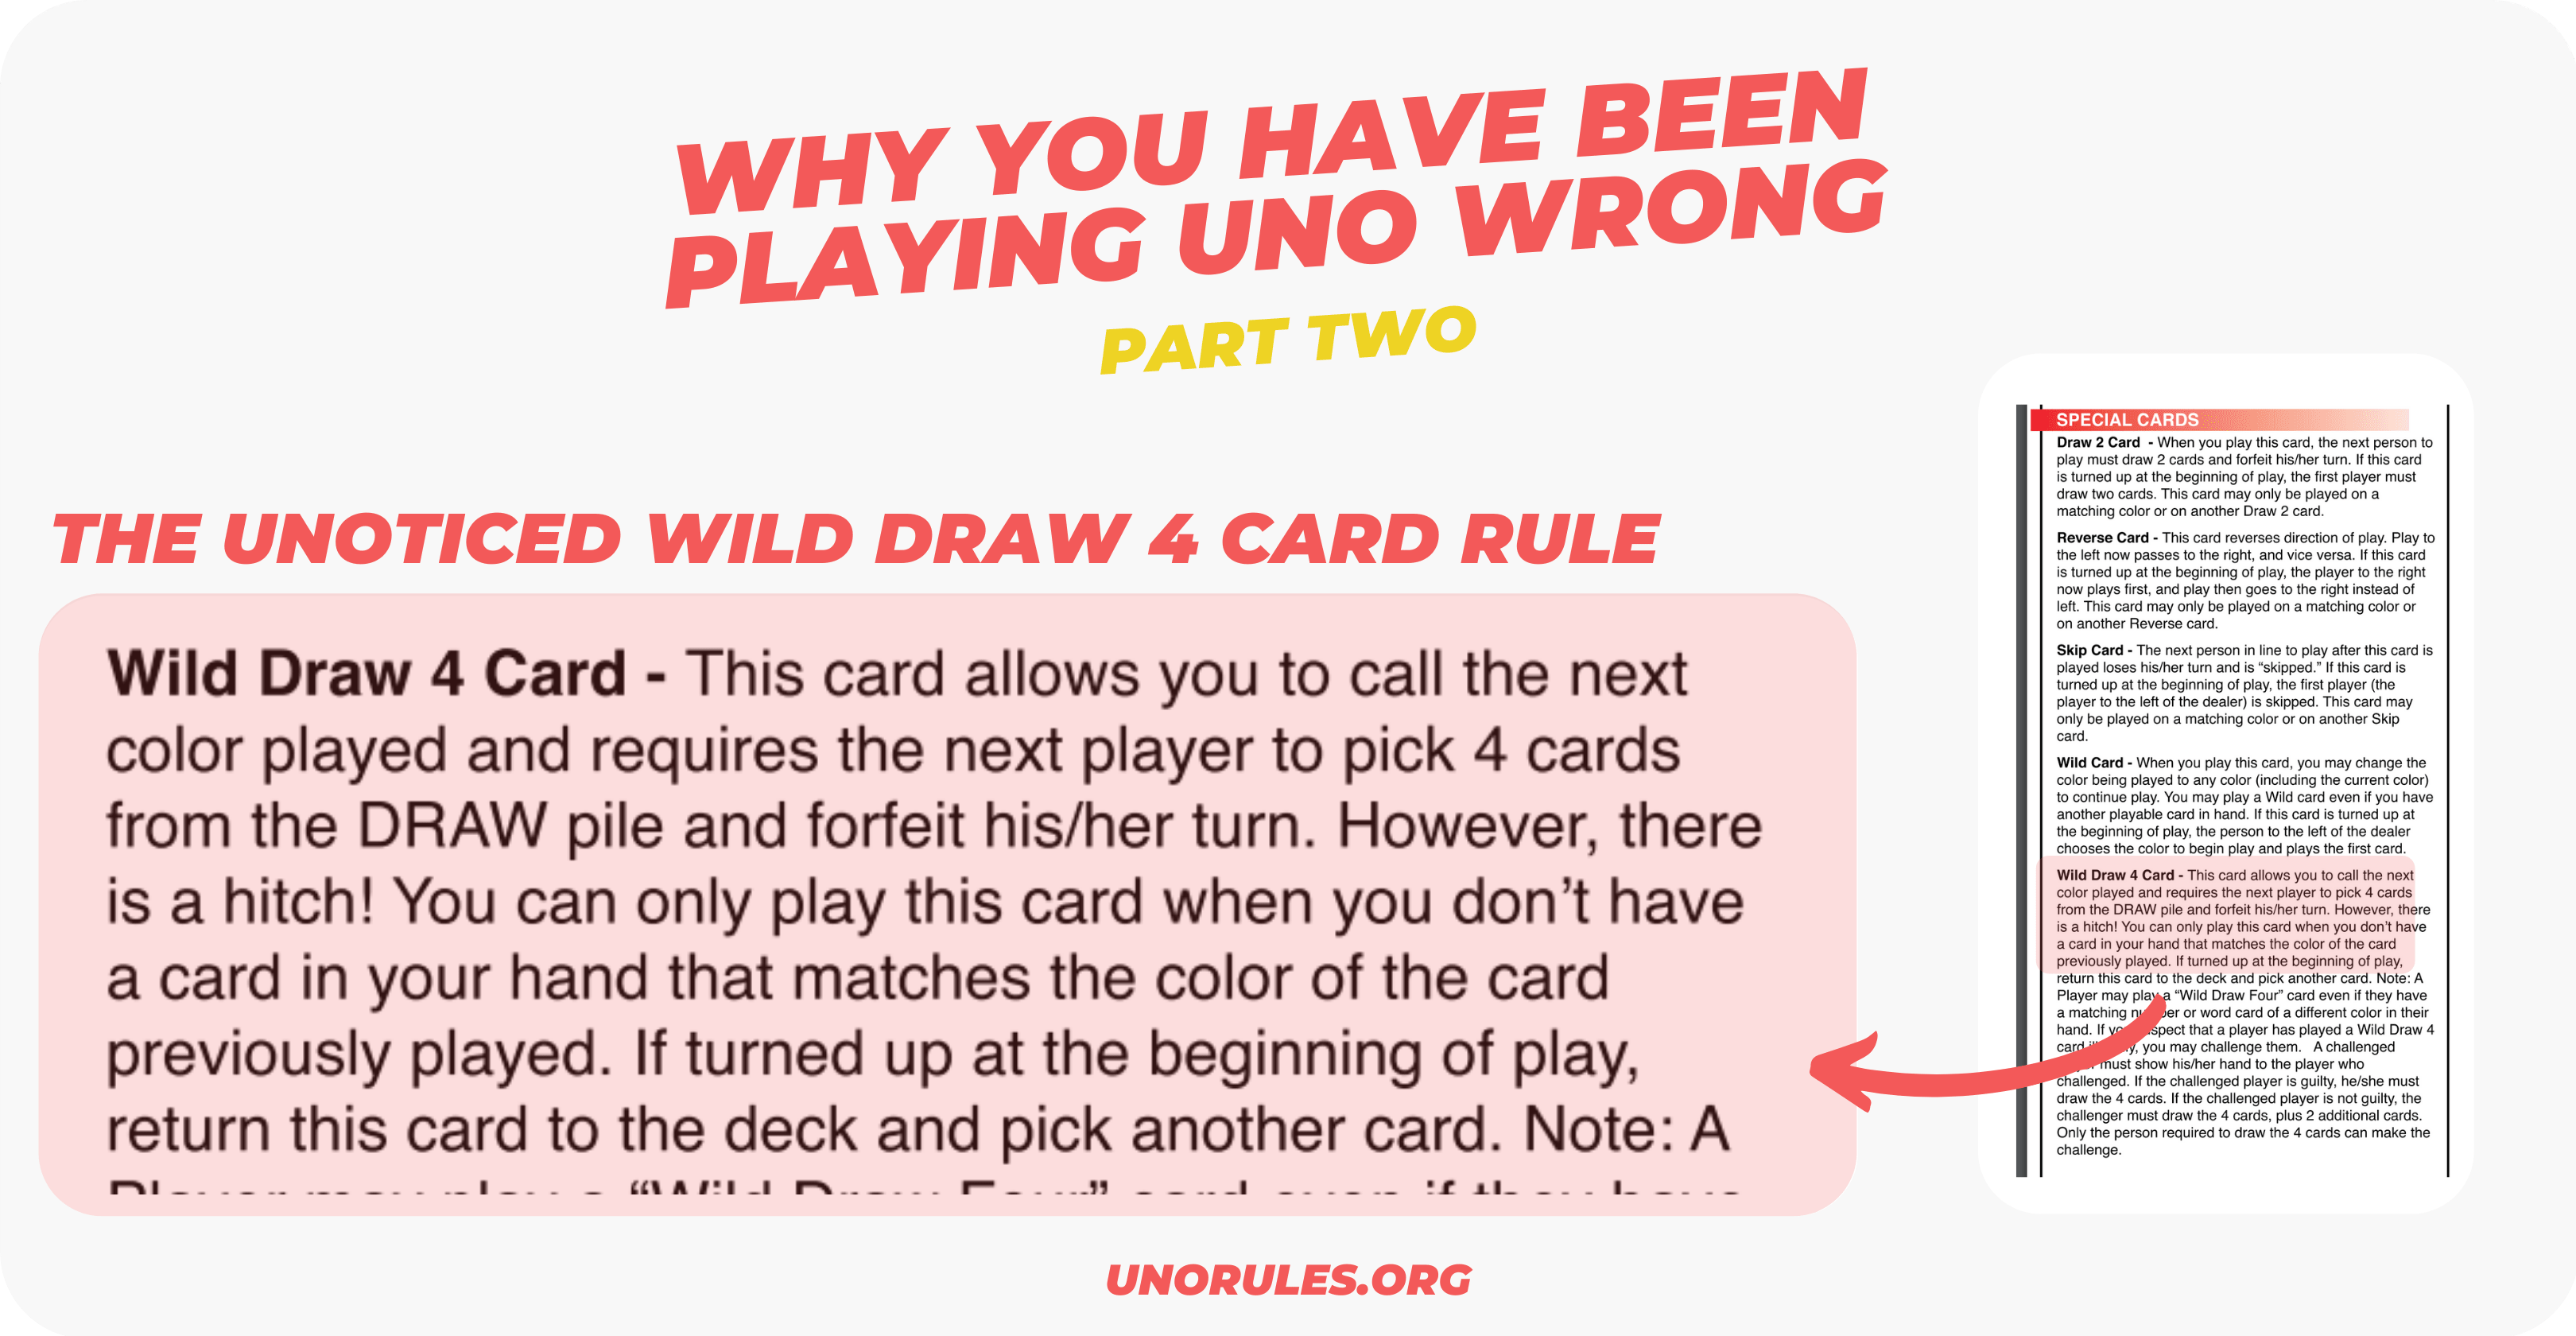 Why you have been playing Uno wrong - Wild Draw 4 card rule